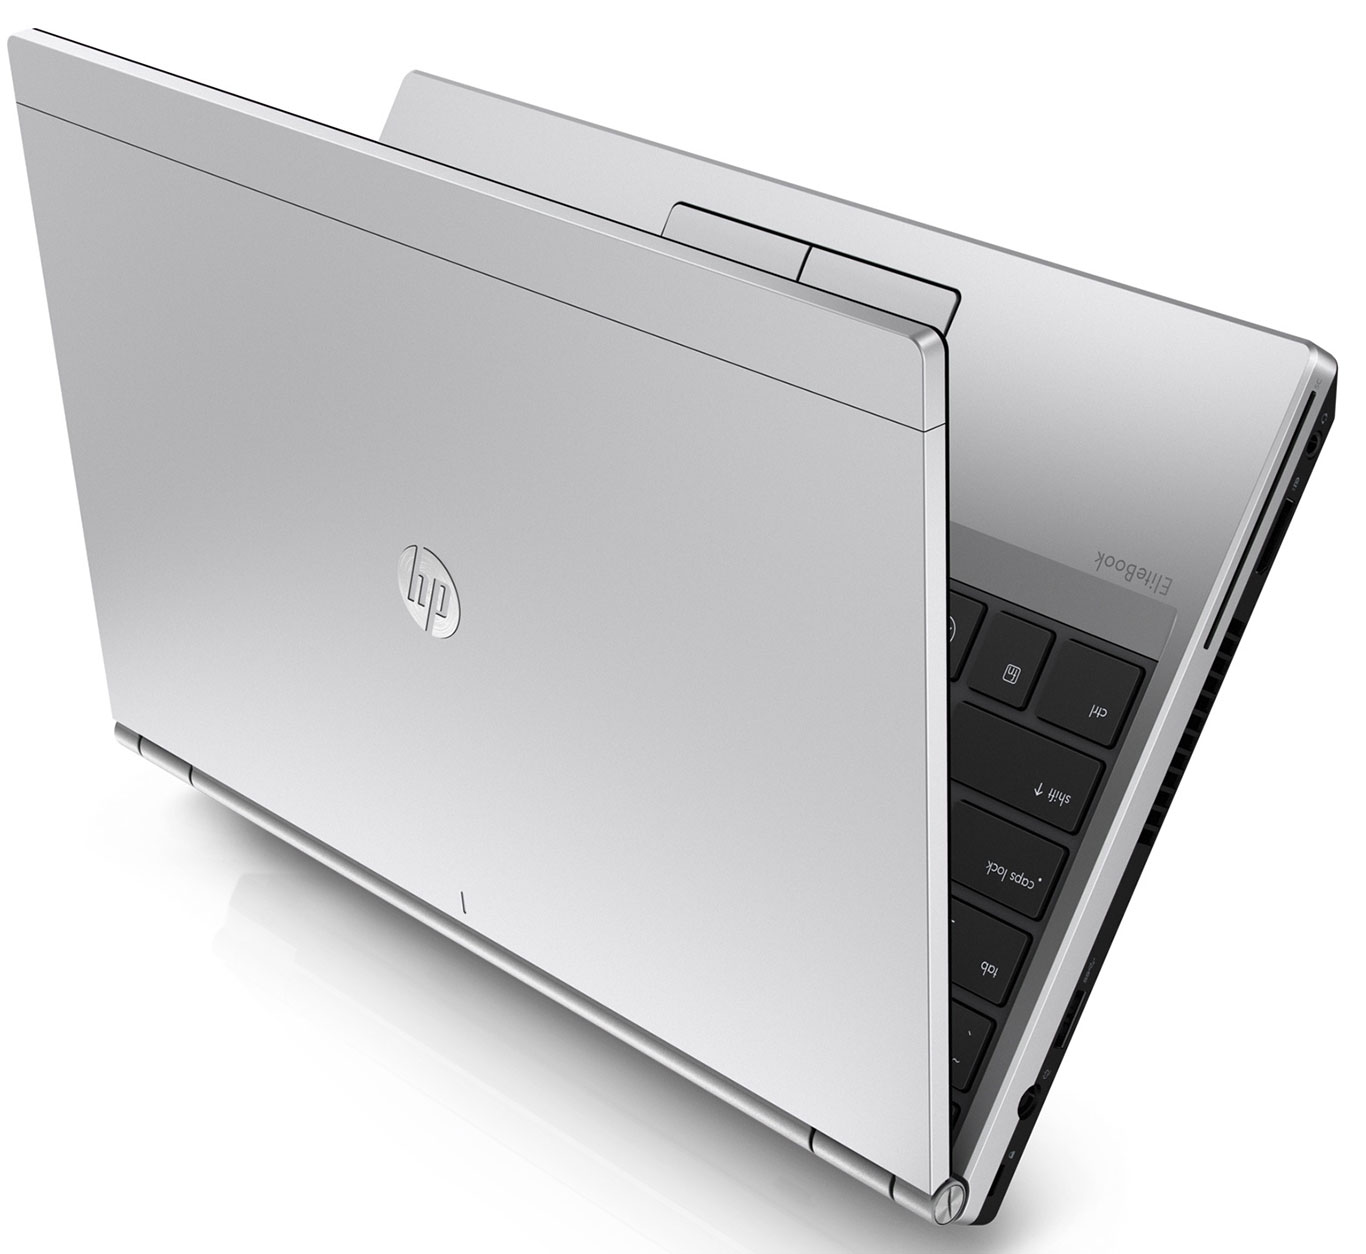 "HP **Refurbished** HP EliteBook 2570p 12.5"" Notebook - Intel i5-3230M 2.6GHz 8GB 128GB SSD Win 7"